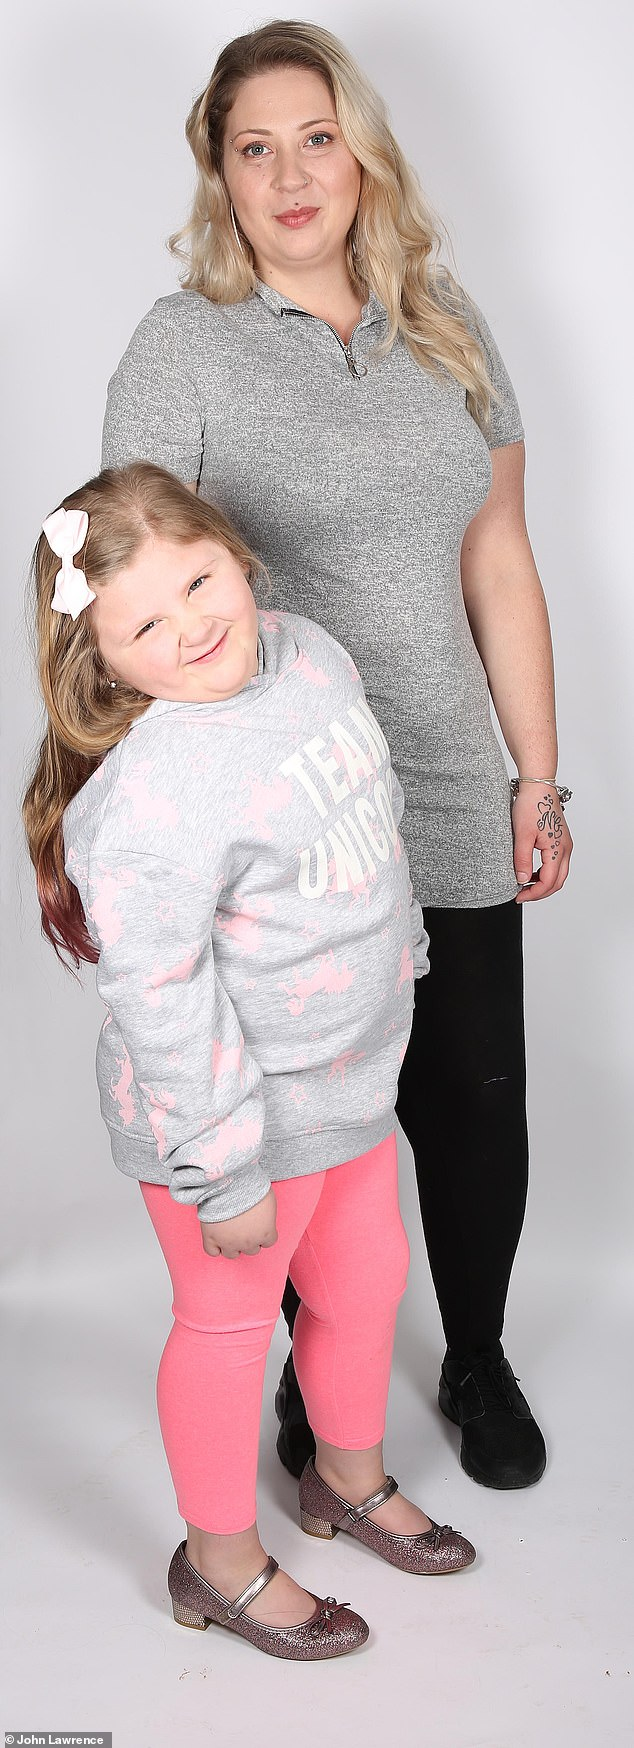 Five-year-old Liliane is dangerously overweight at 7 st. Her appetite is so voracious her mother Lana (pictured together) has caught her trying to eat raw sausages from the freezer